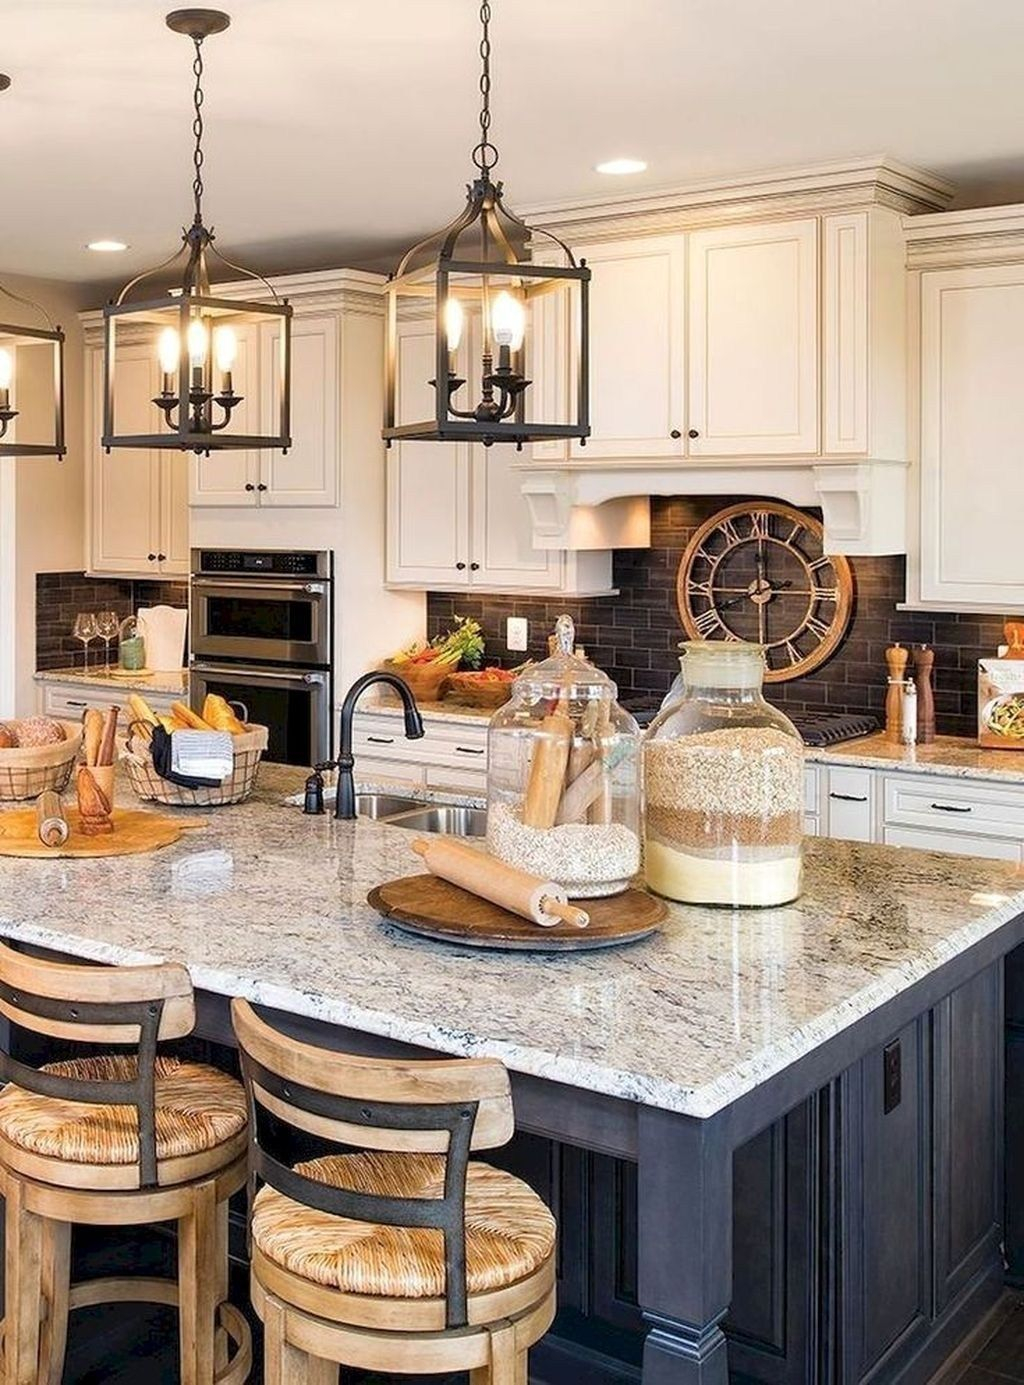 Cool Diy Kitchen Design Ideas You Will Definitely Want To Keep 04